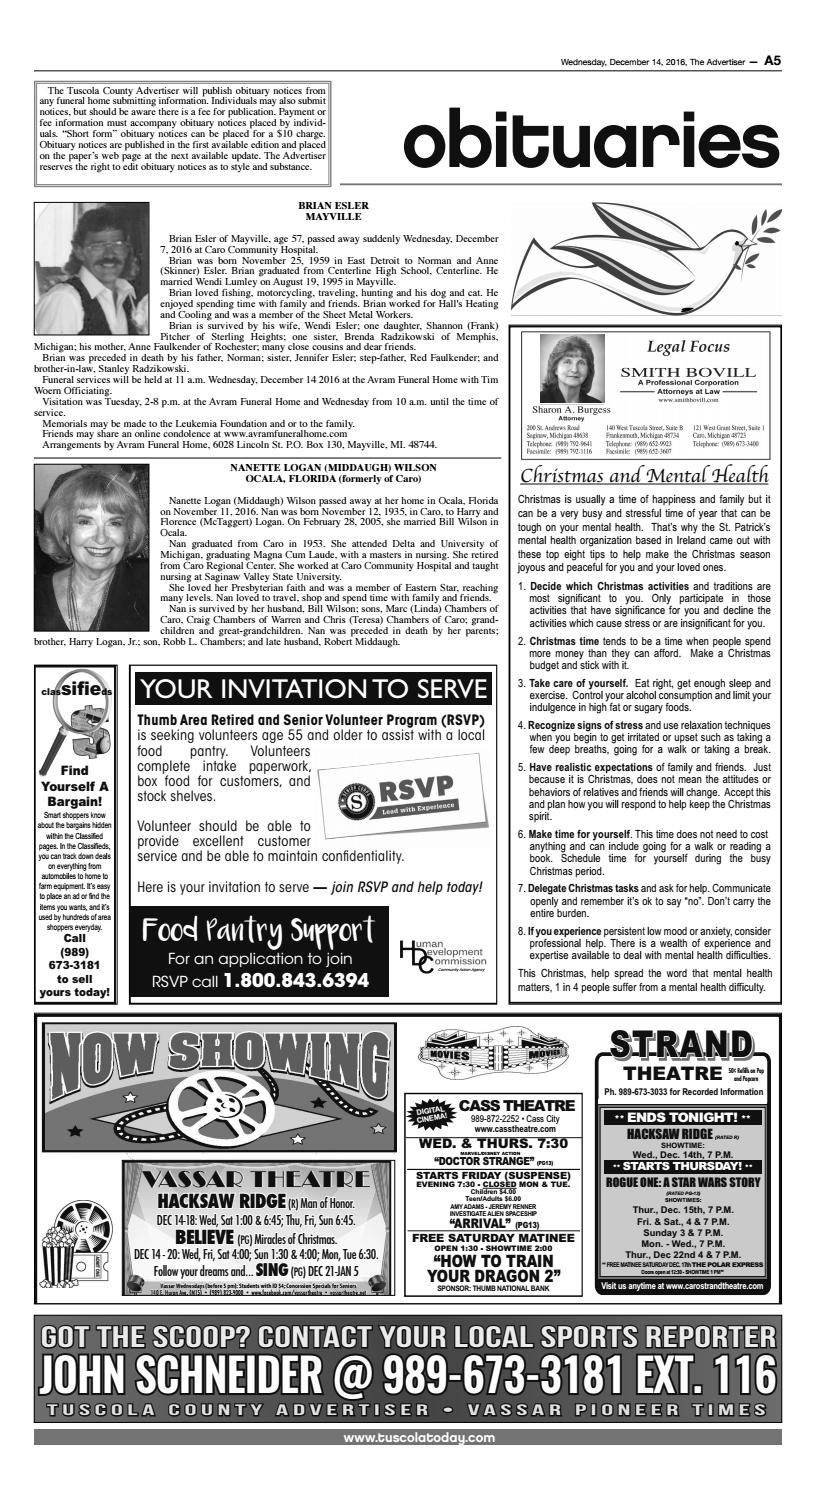 Tca 12 14 16 all pages by Tuscola County Advertiser - issuu